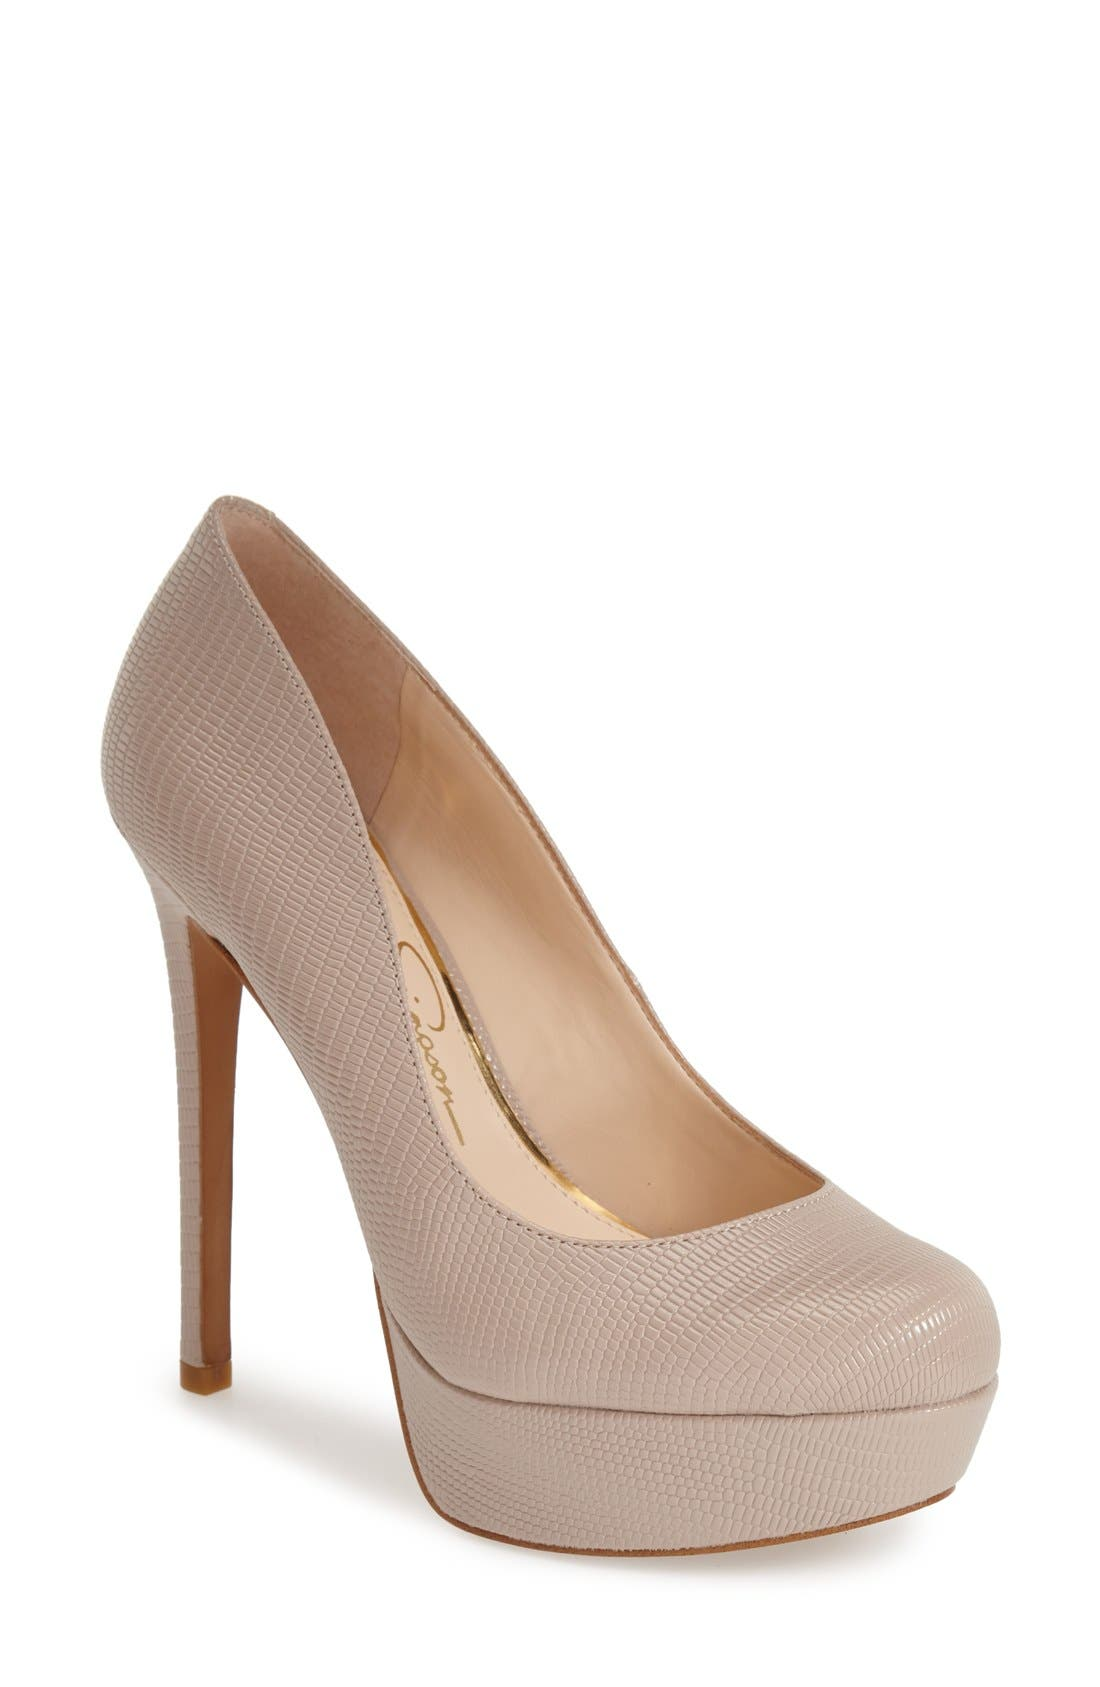 Alternate Image 1 Selected - Jessica Simpson 'Sandrah' Platform Pump (Women)